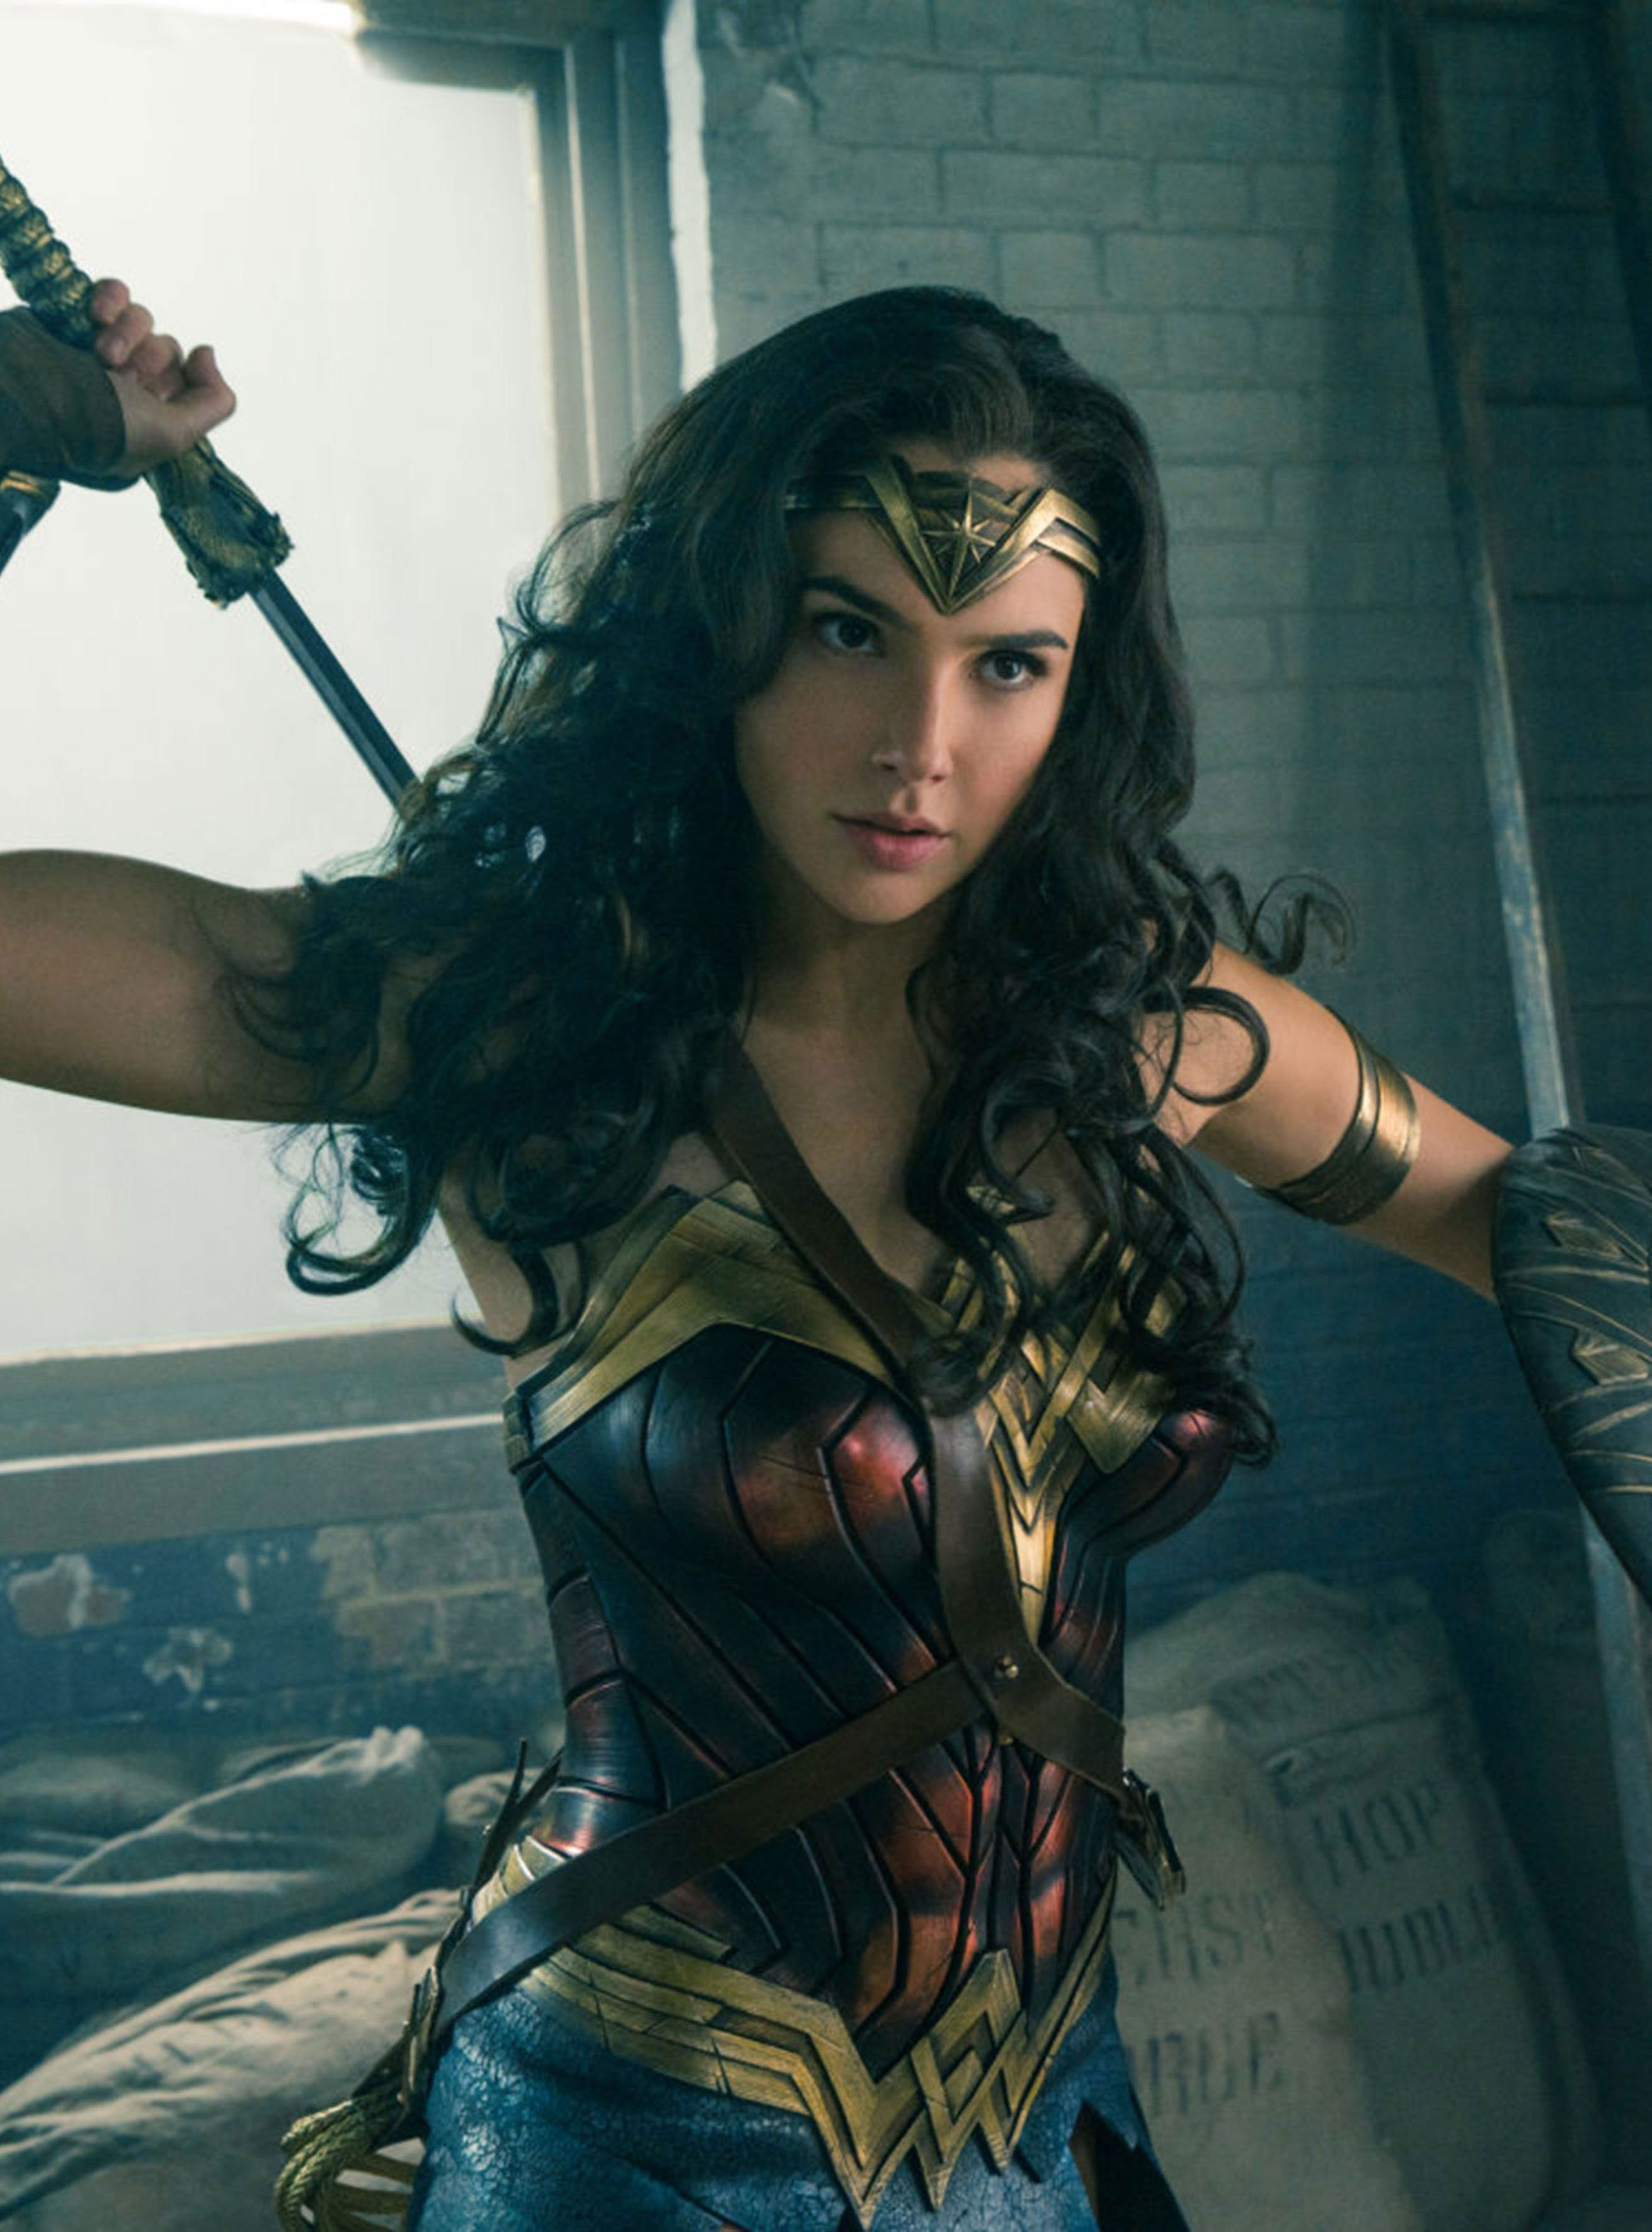 There S Only One Superhero Feminist Masterpiece On Hbo Max For Now In 2020 Gal Gadot Wonder Woman Wonder Woman Movie Woman Movie